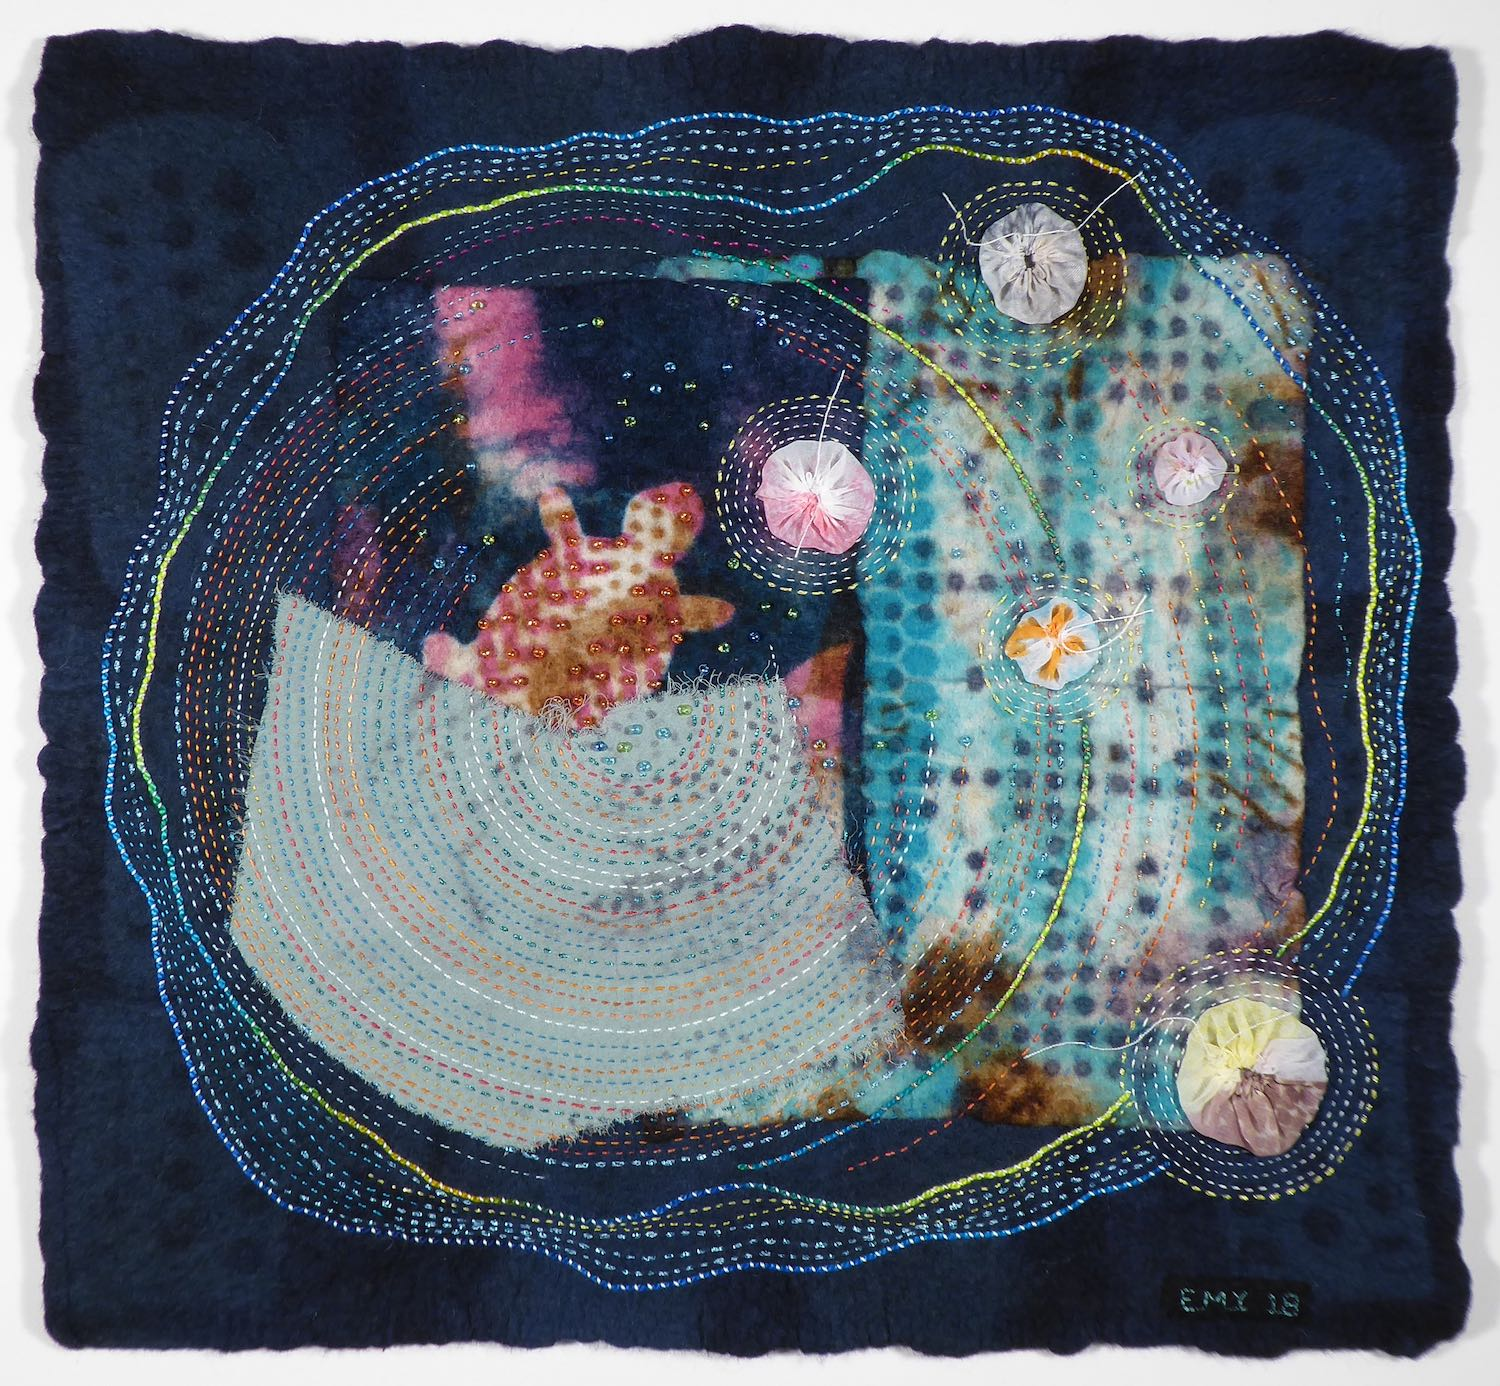 Changing Tides, Changing Tides, 22 x 22 x 2.5 inches, 2018